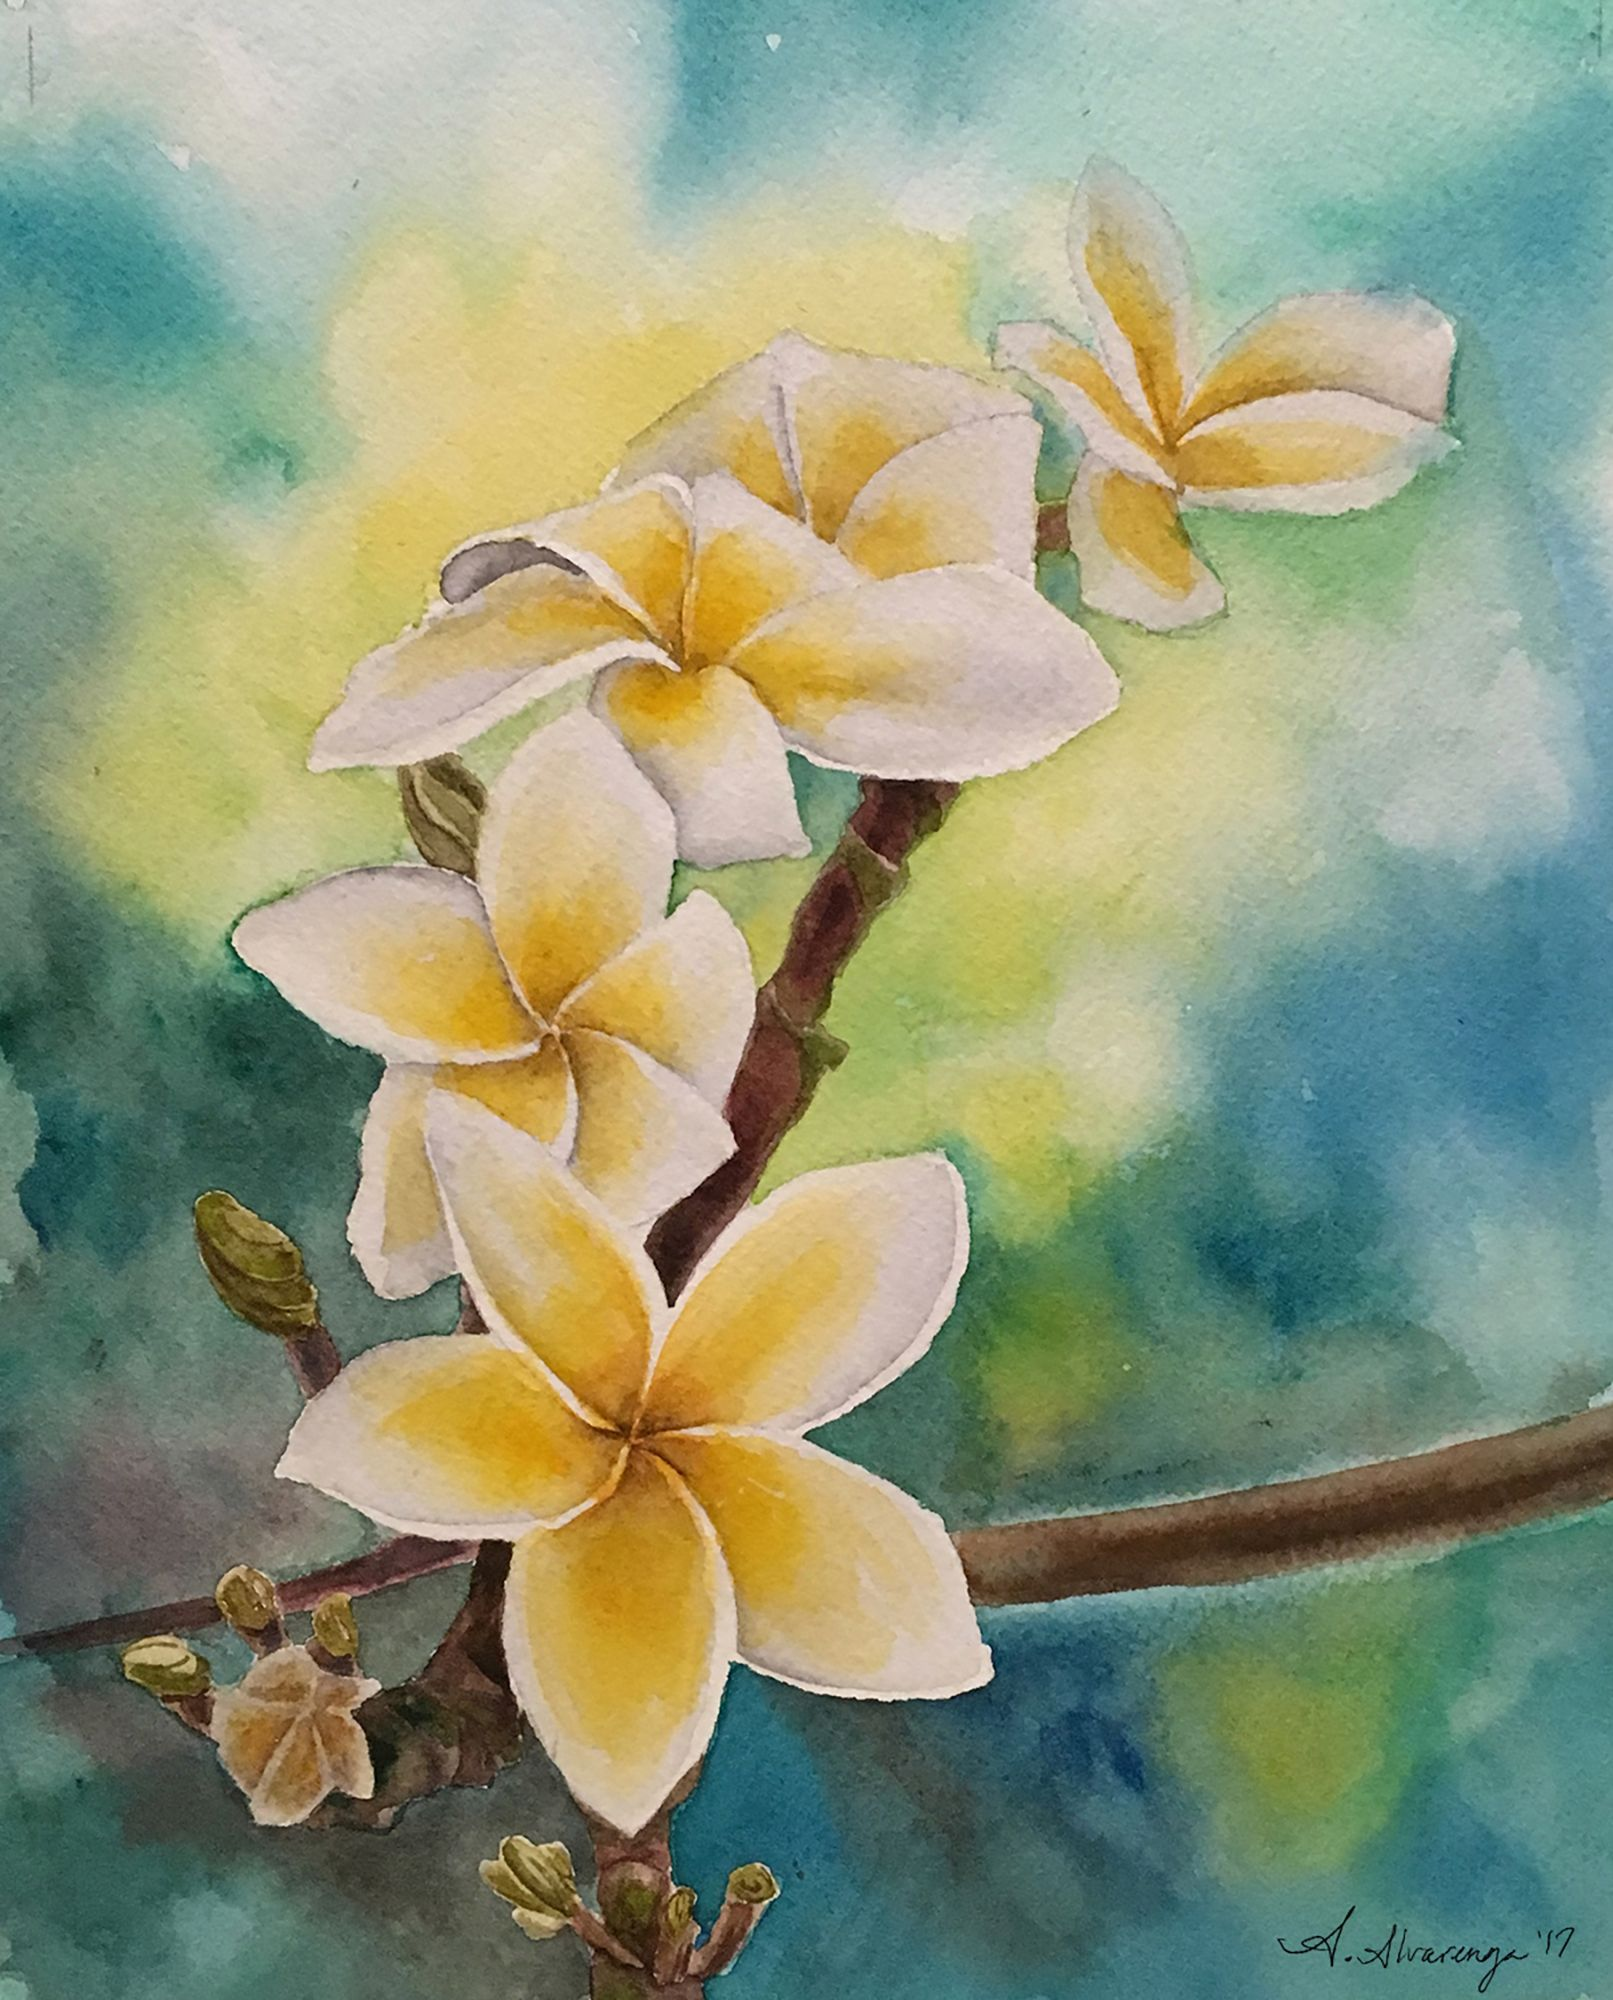 Photo About Sun And Sunshine Watercolor Painting Illustration